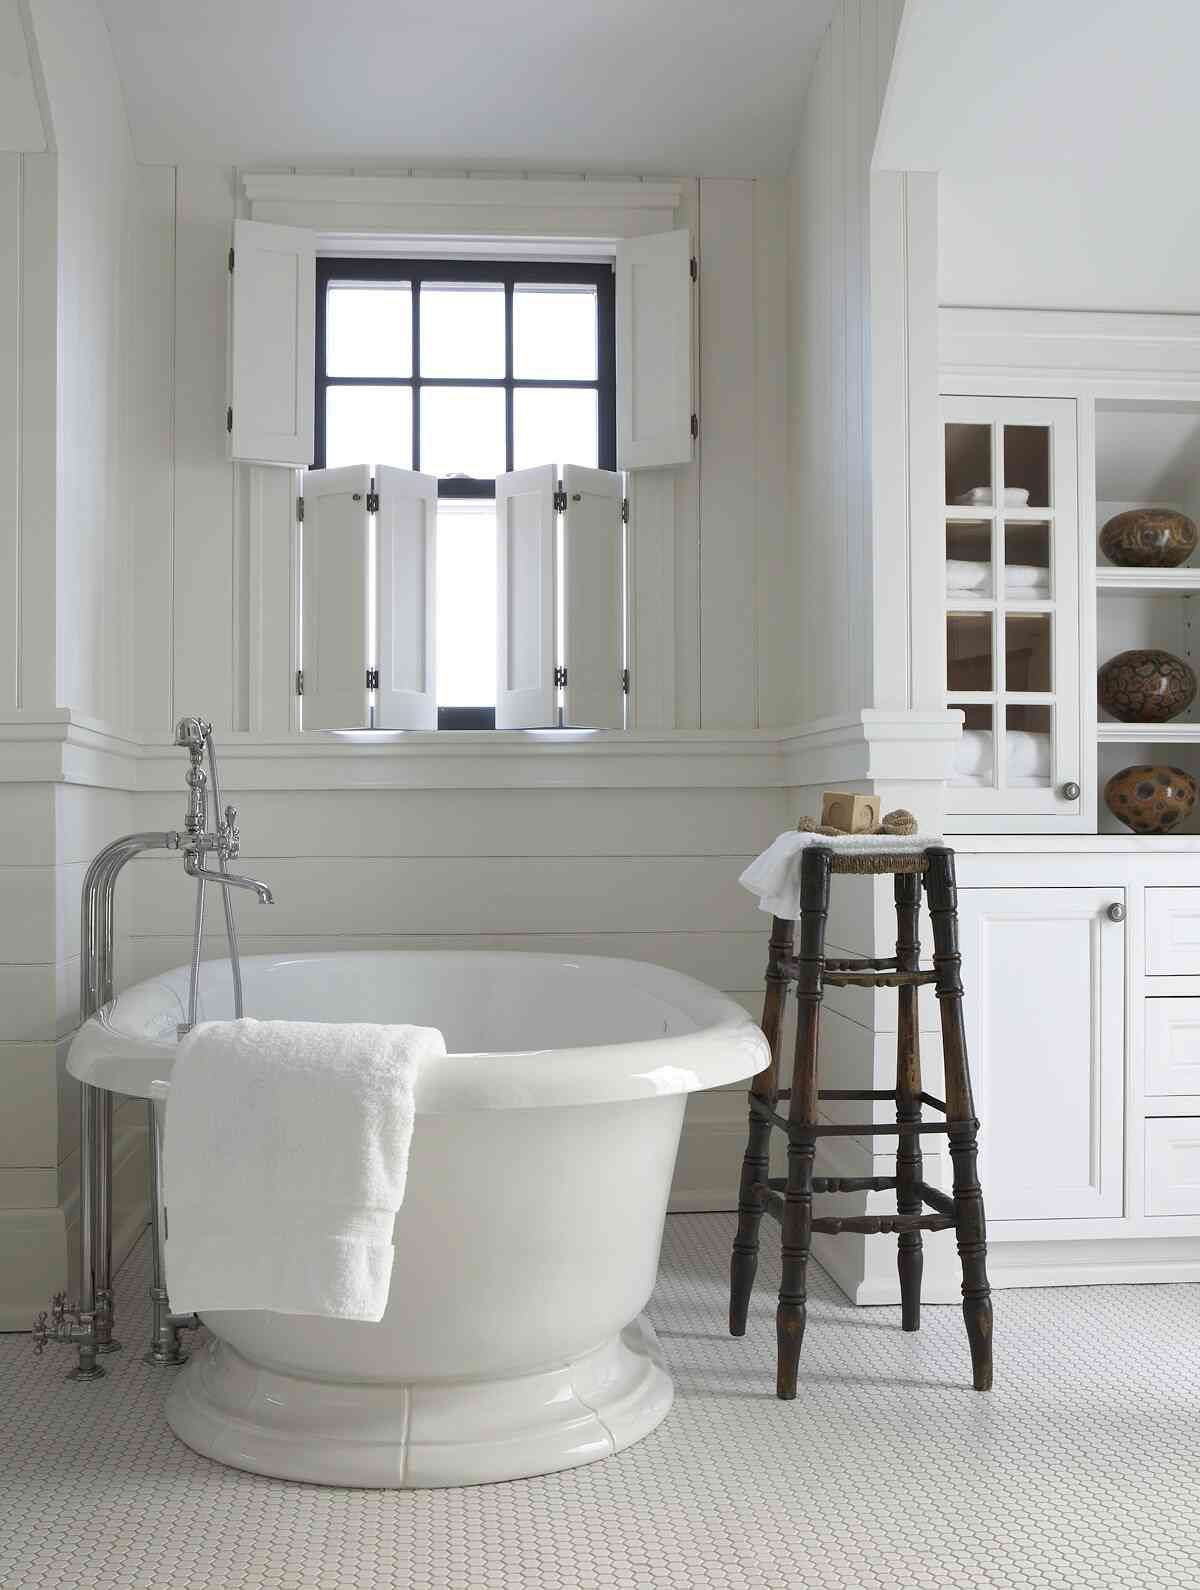 Awesome New England Interior Design Ideas Pictures - Decorating ...